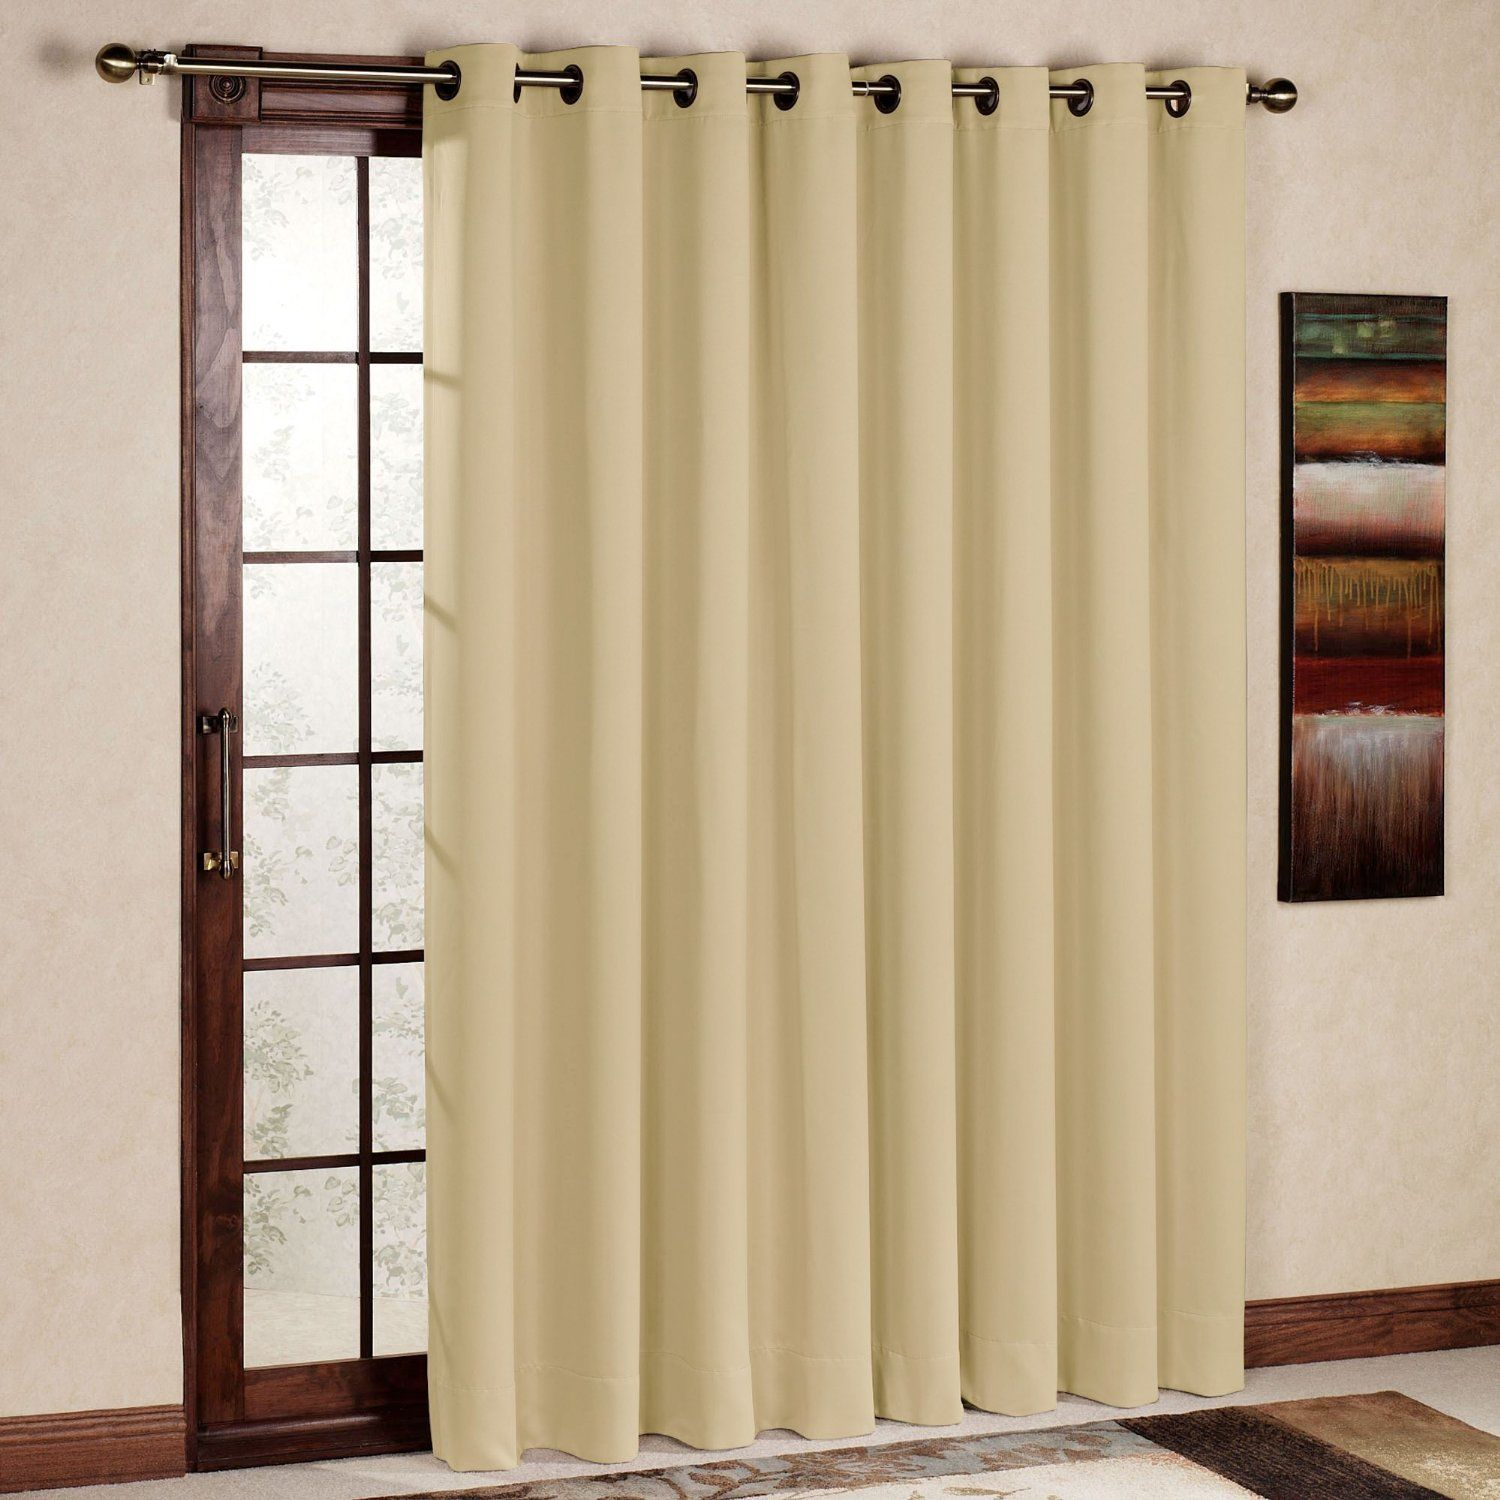 High Quality RHF Wide Thermal Blackout Patio Door Curtain Panel, Sliding Door Insulated  Curtains,Extra Wide By Inches Beige   Home Decor